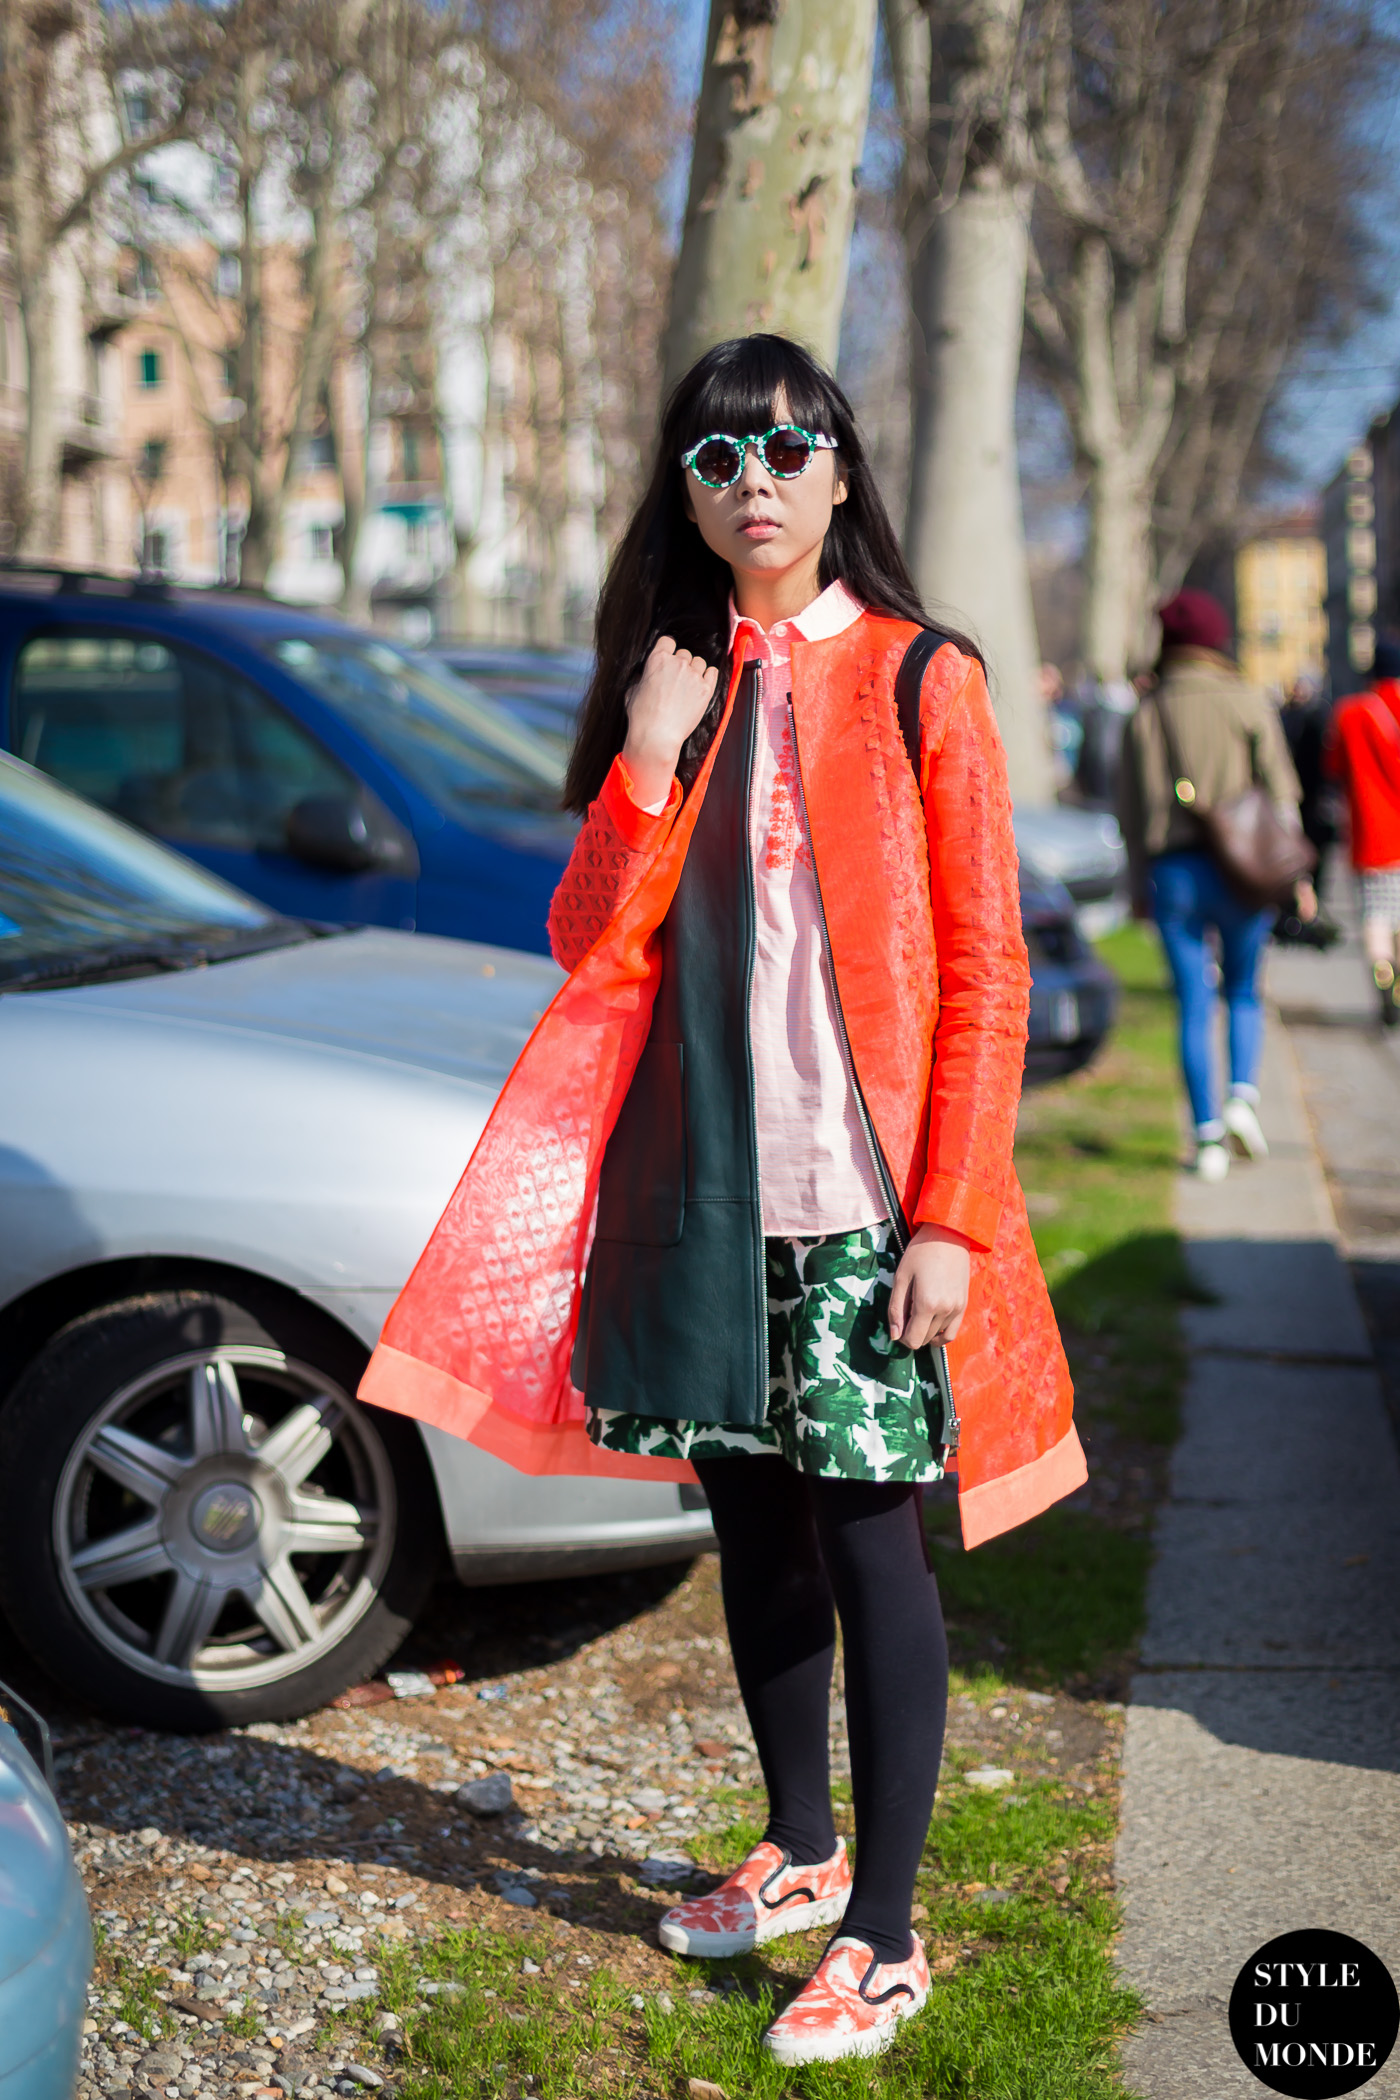 Susanna Lau Style Bubble Susie Bubble Street Style Street Fashion Streetsnaps by STYLEDUMONDE Street Style Fashion Blog